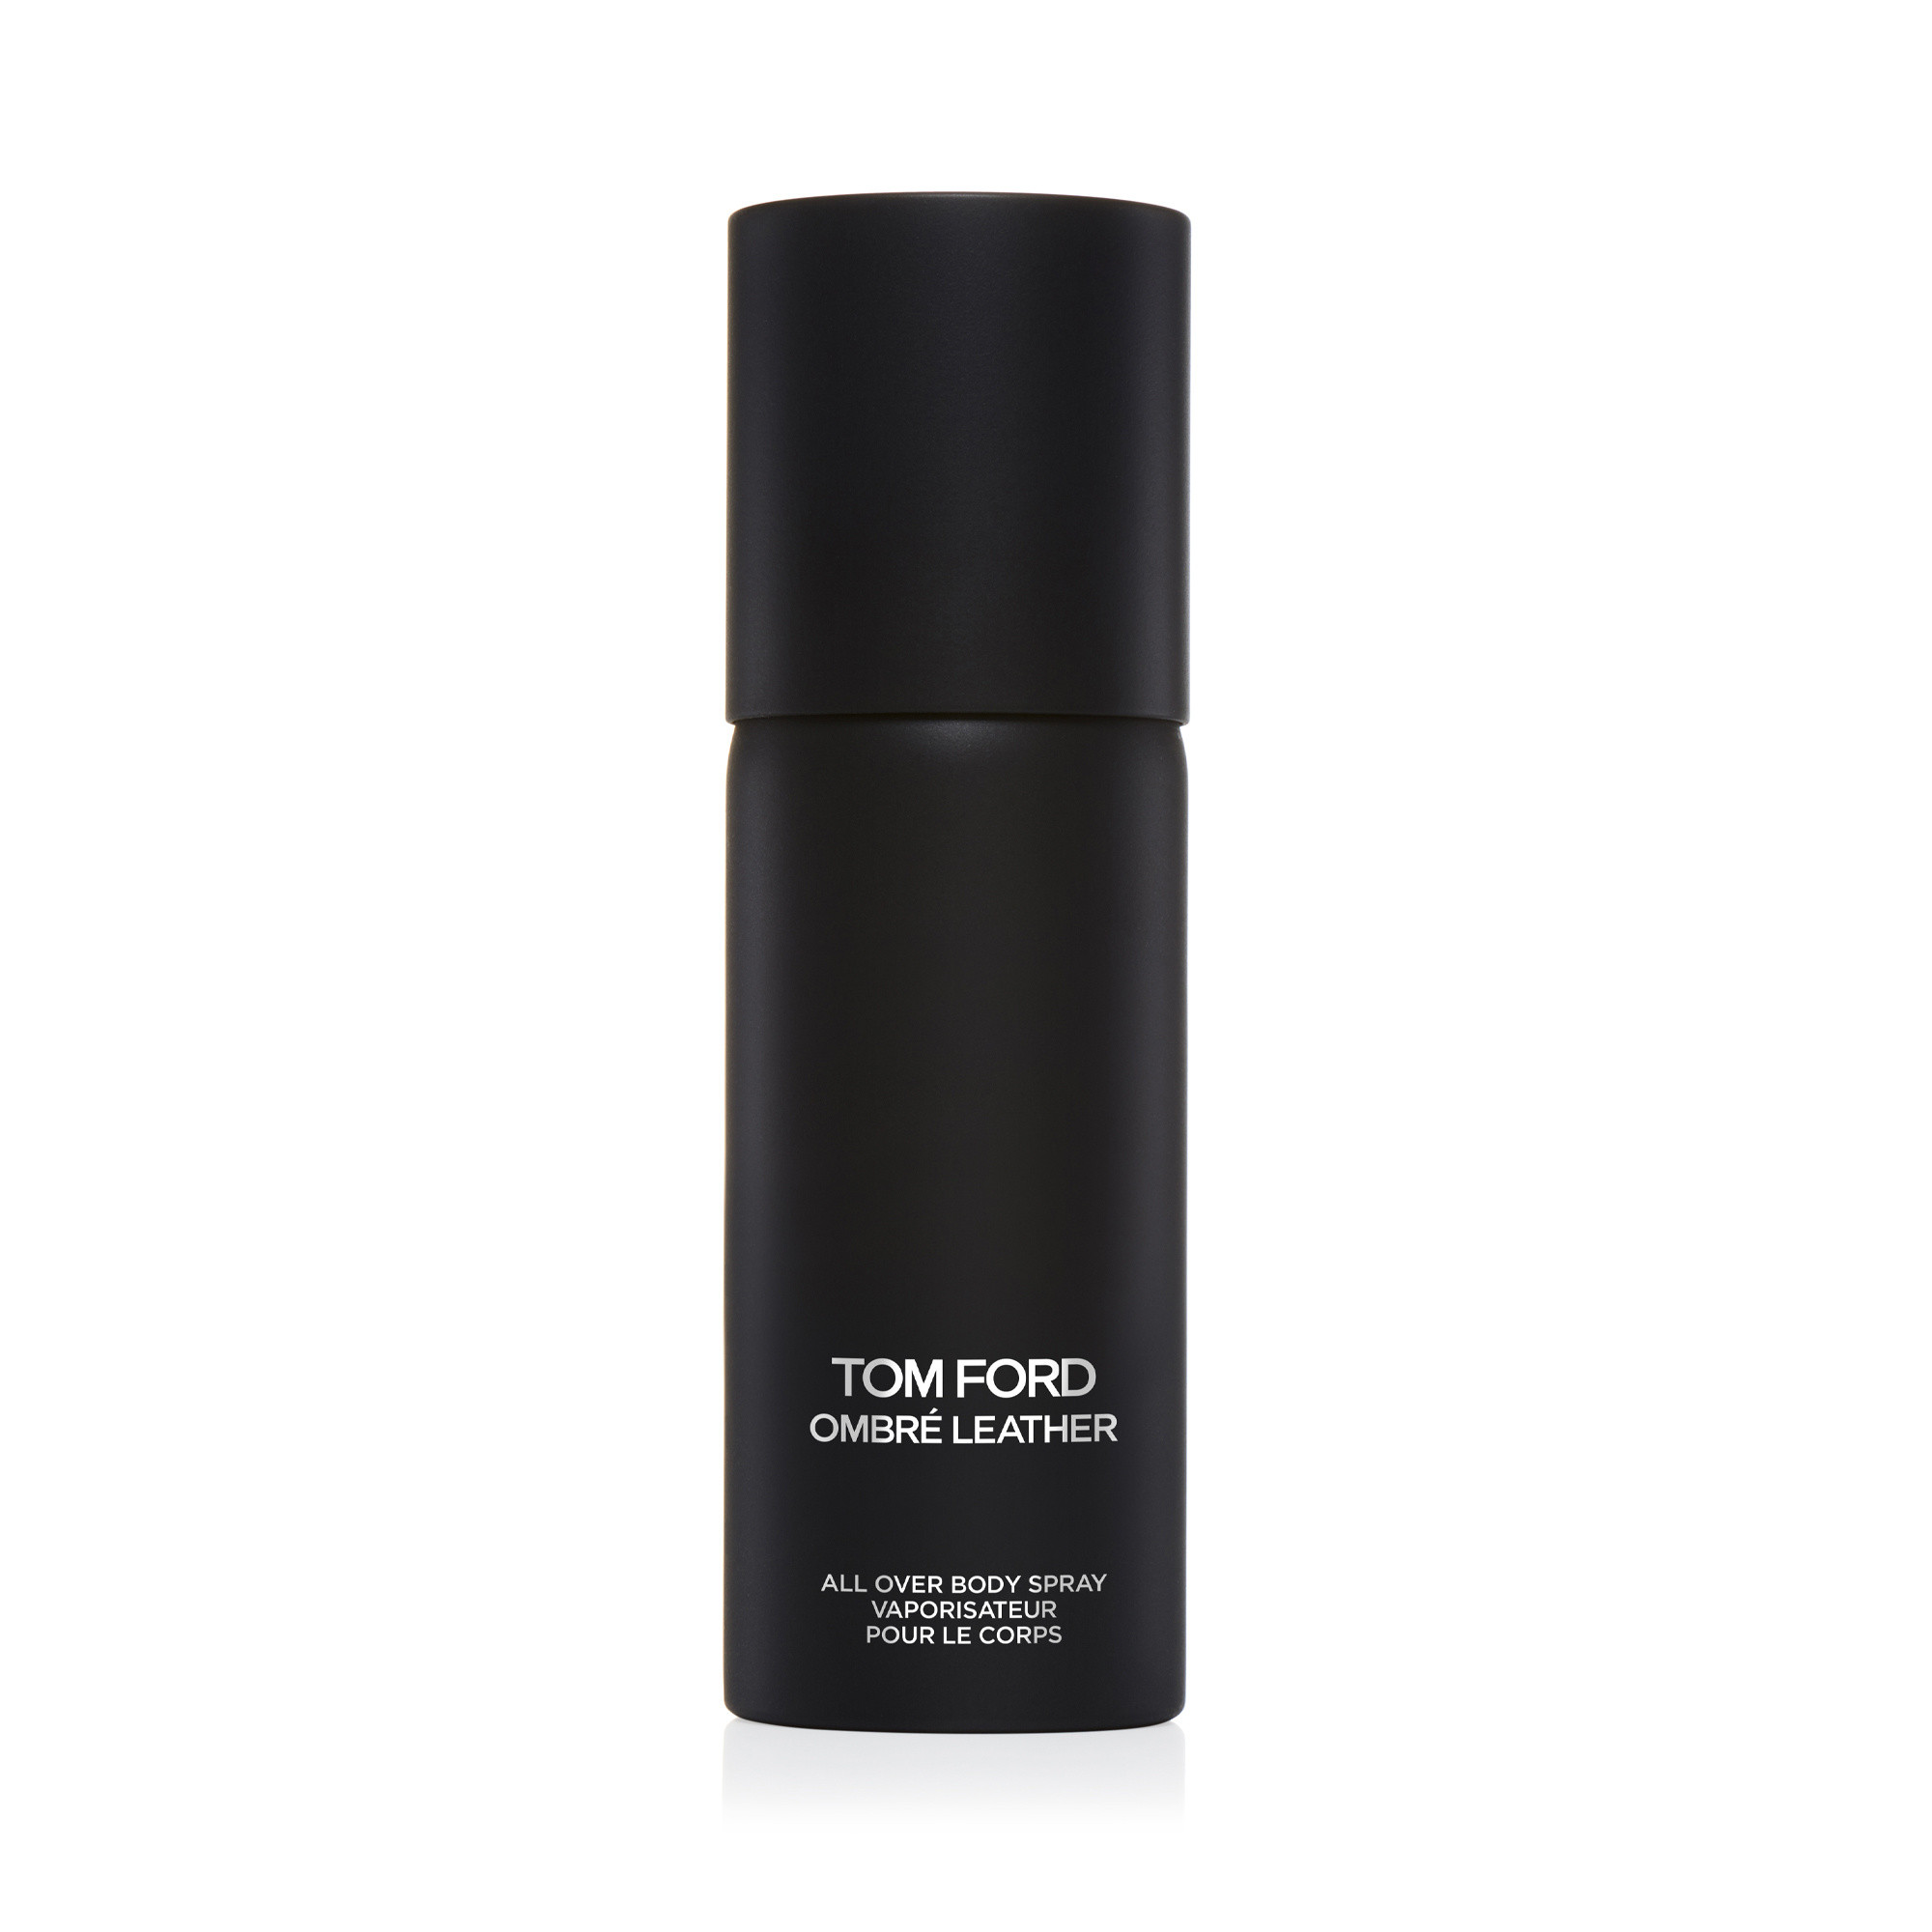 Tom Ford Ombré Leather All Over Body Spray, Nero, large image number 0